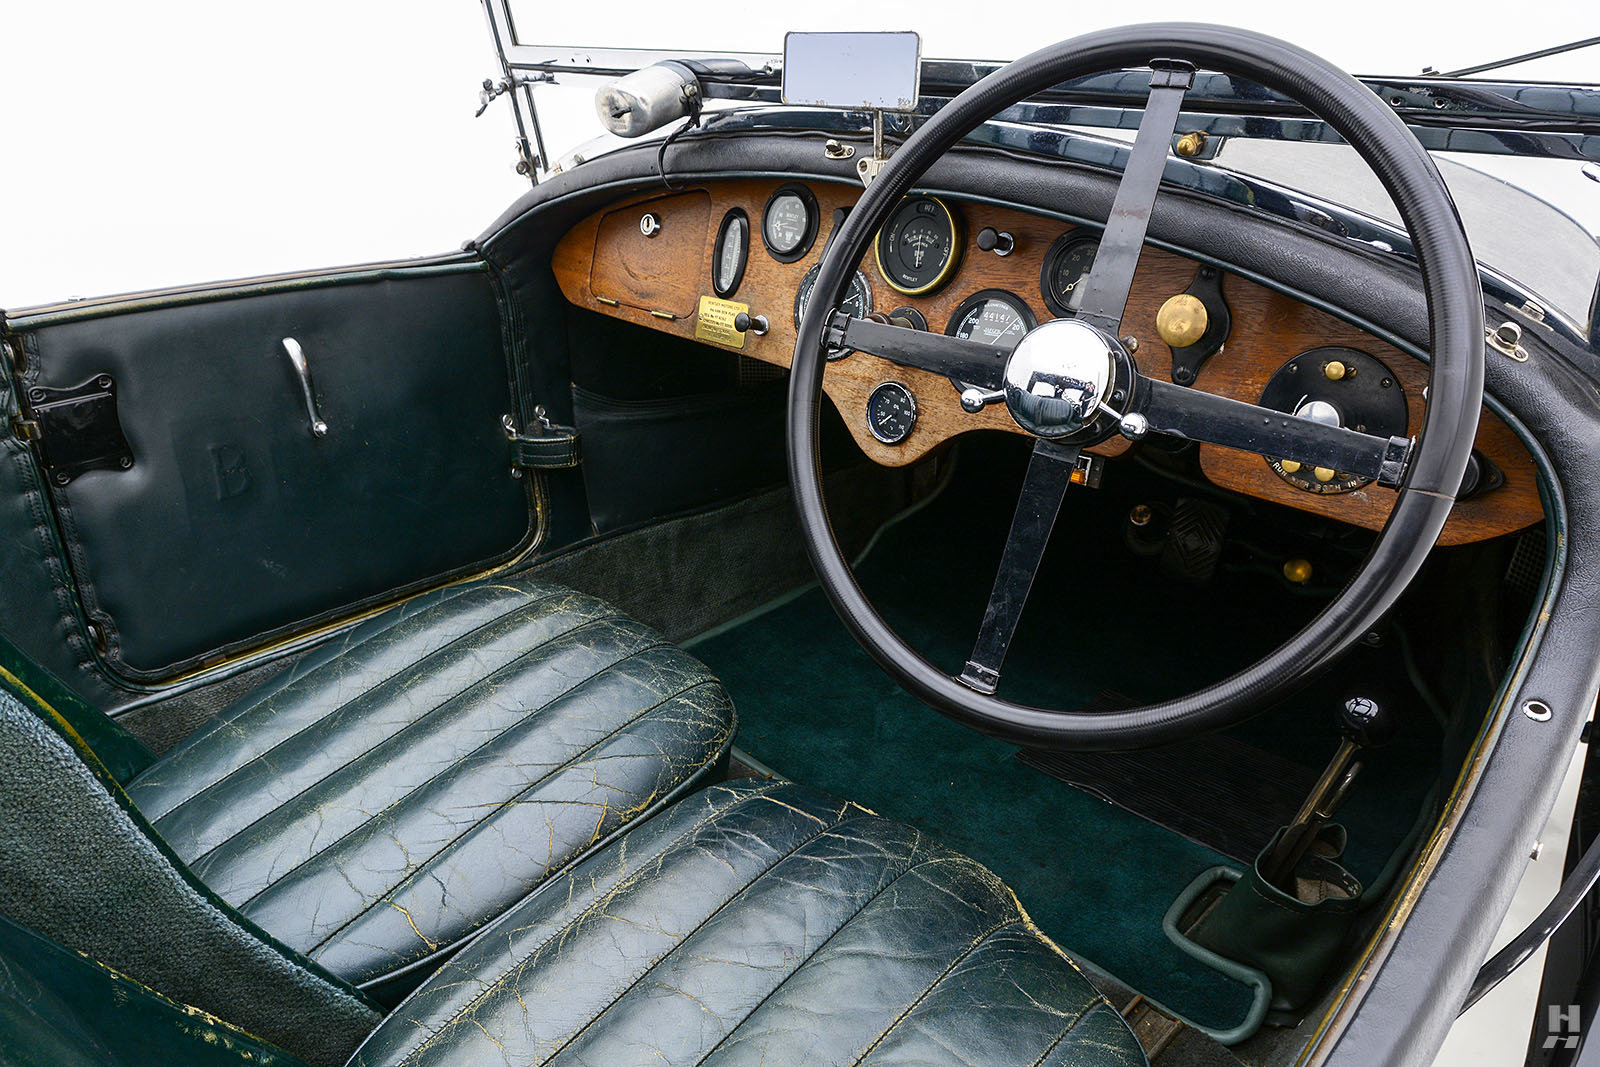 1928 BENTLEY 4.5 LITRE SPORTS TOURER For Sale (picture 4 of 6)